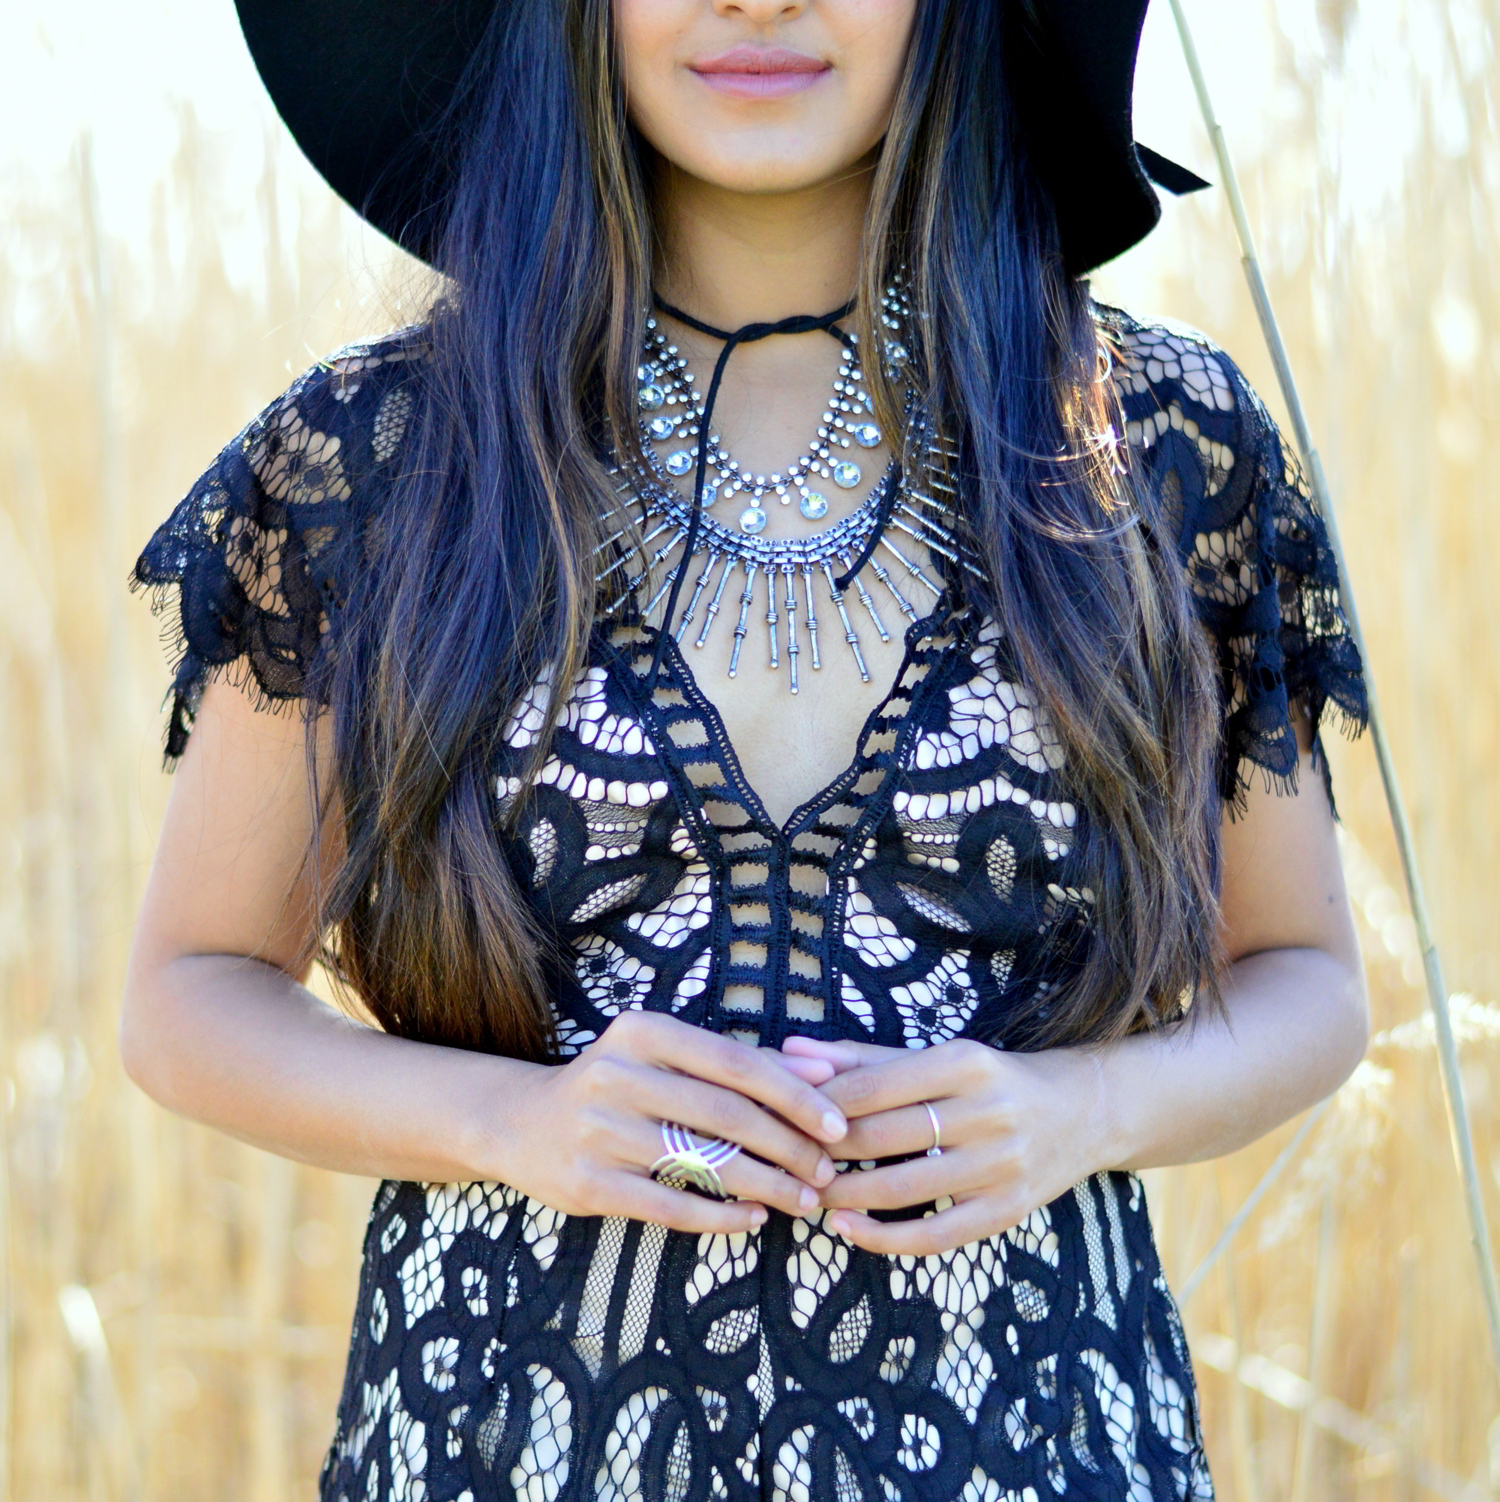 black-lace-romper-boho-festival-style-layered-necklaces 3